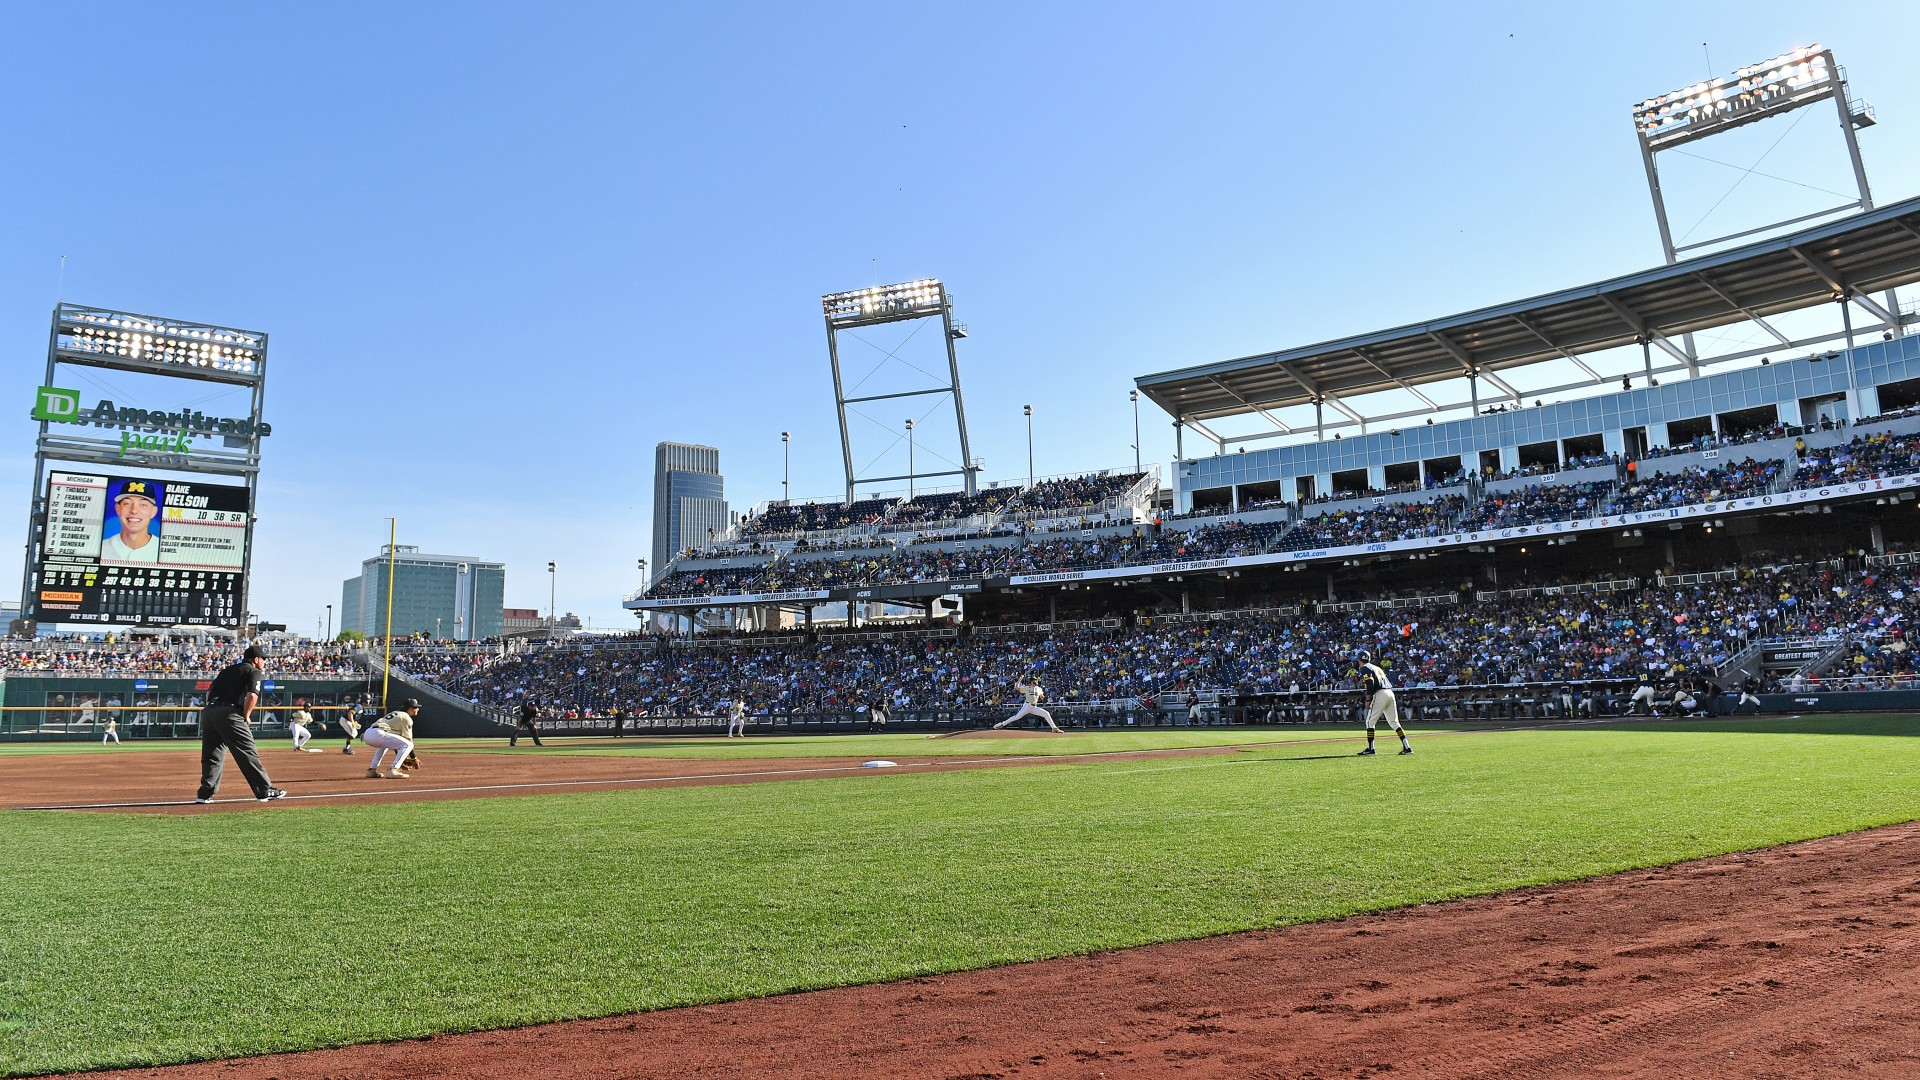 College World Series bracket 2021: Full TV schedule, times, channels for NCAA baseball tournament